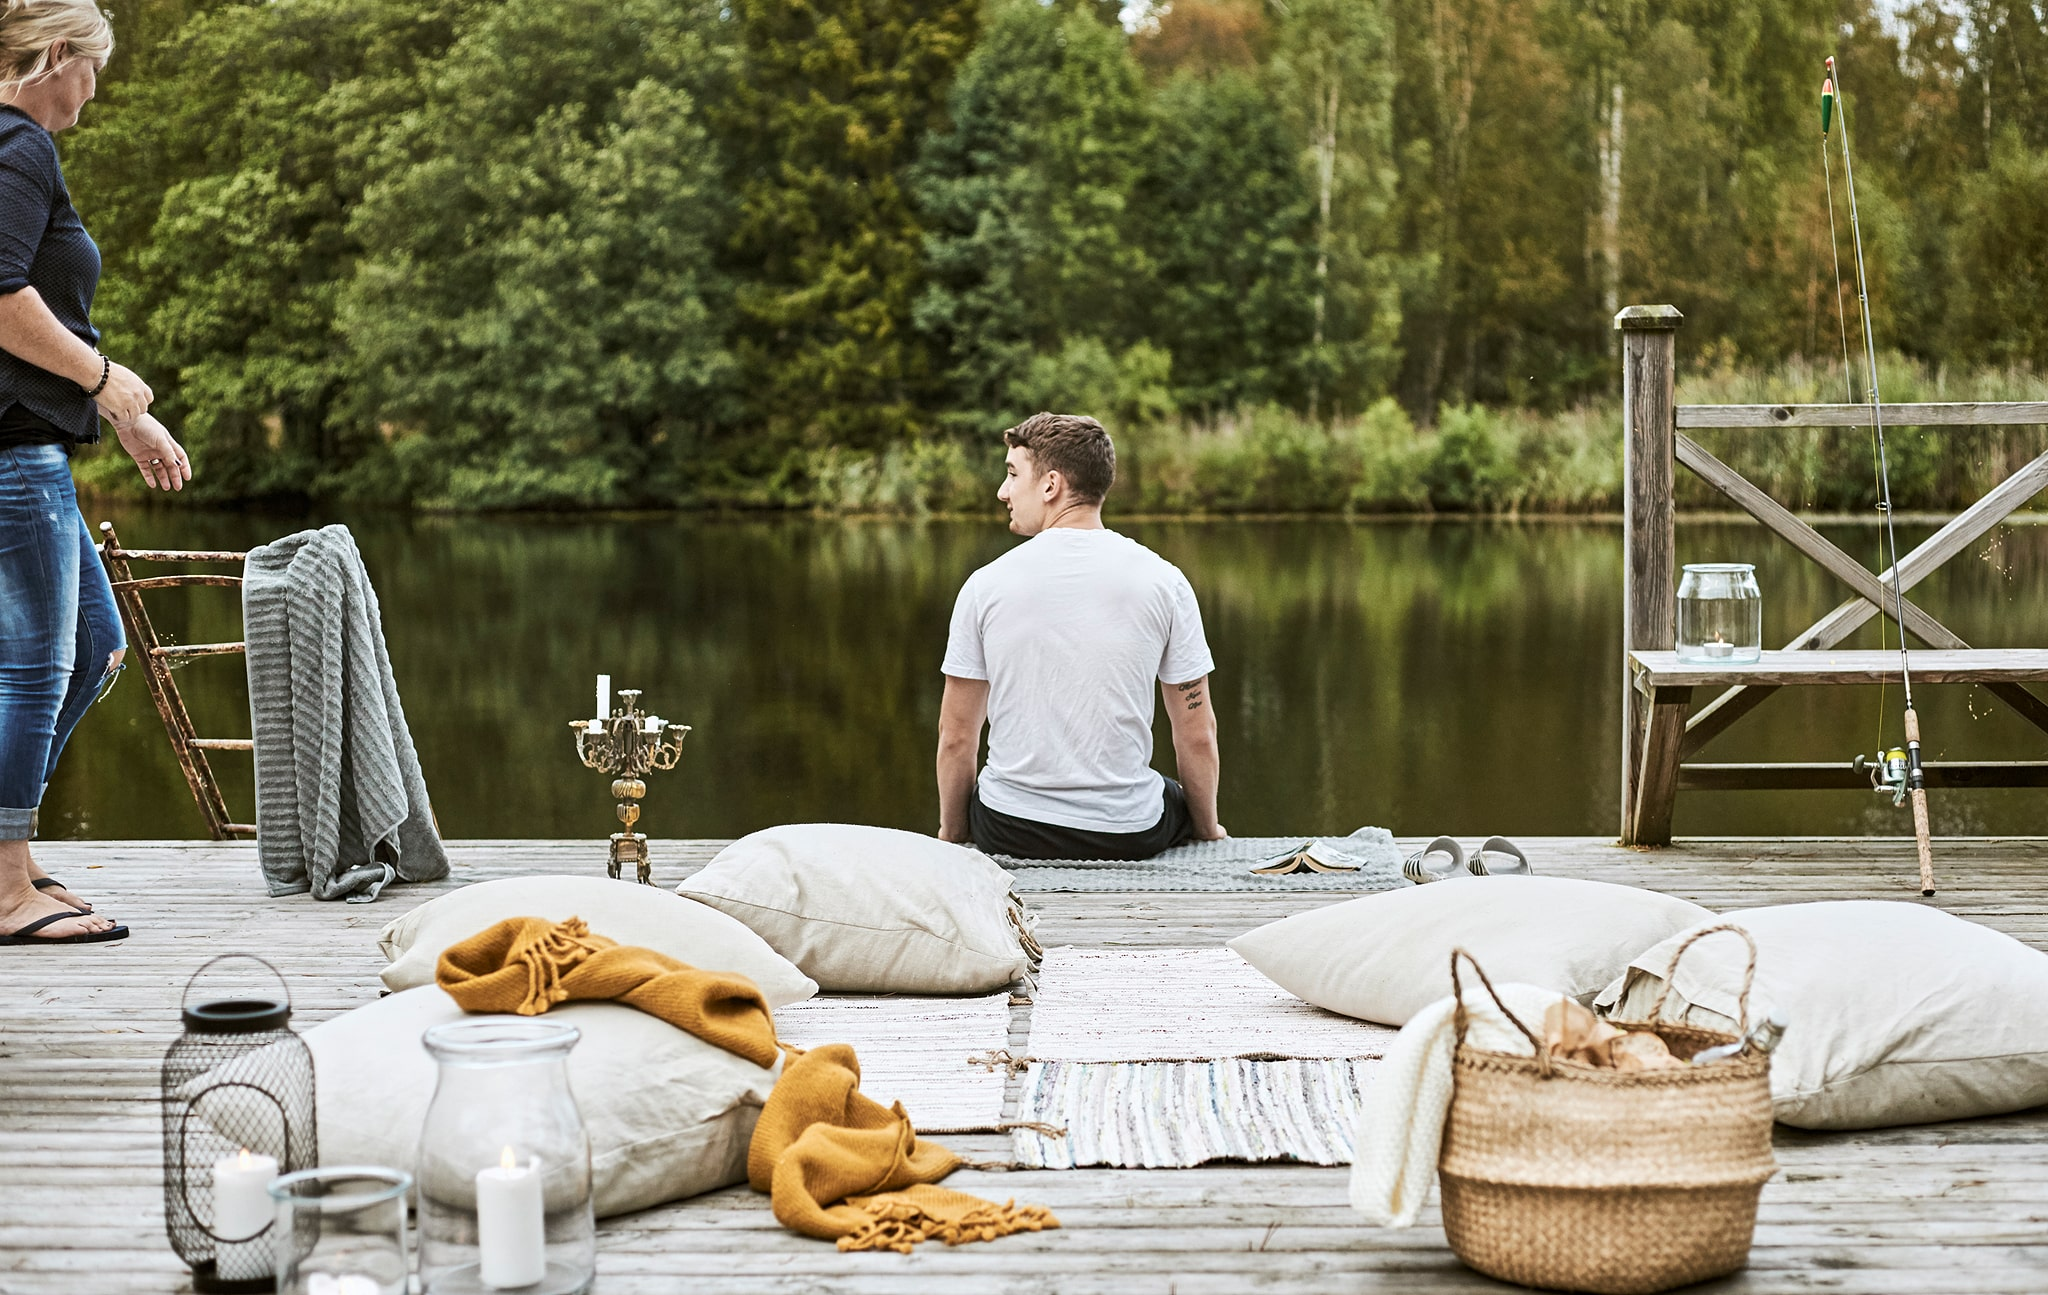 A boy sits on the edge of a jetty next to a woman in flip-flops. On the deck are rugs, cushions, throws and a picnic basket.